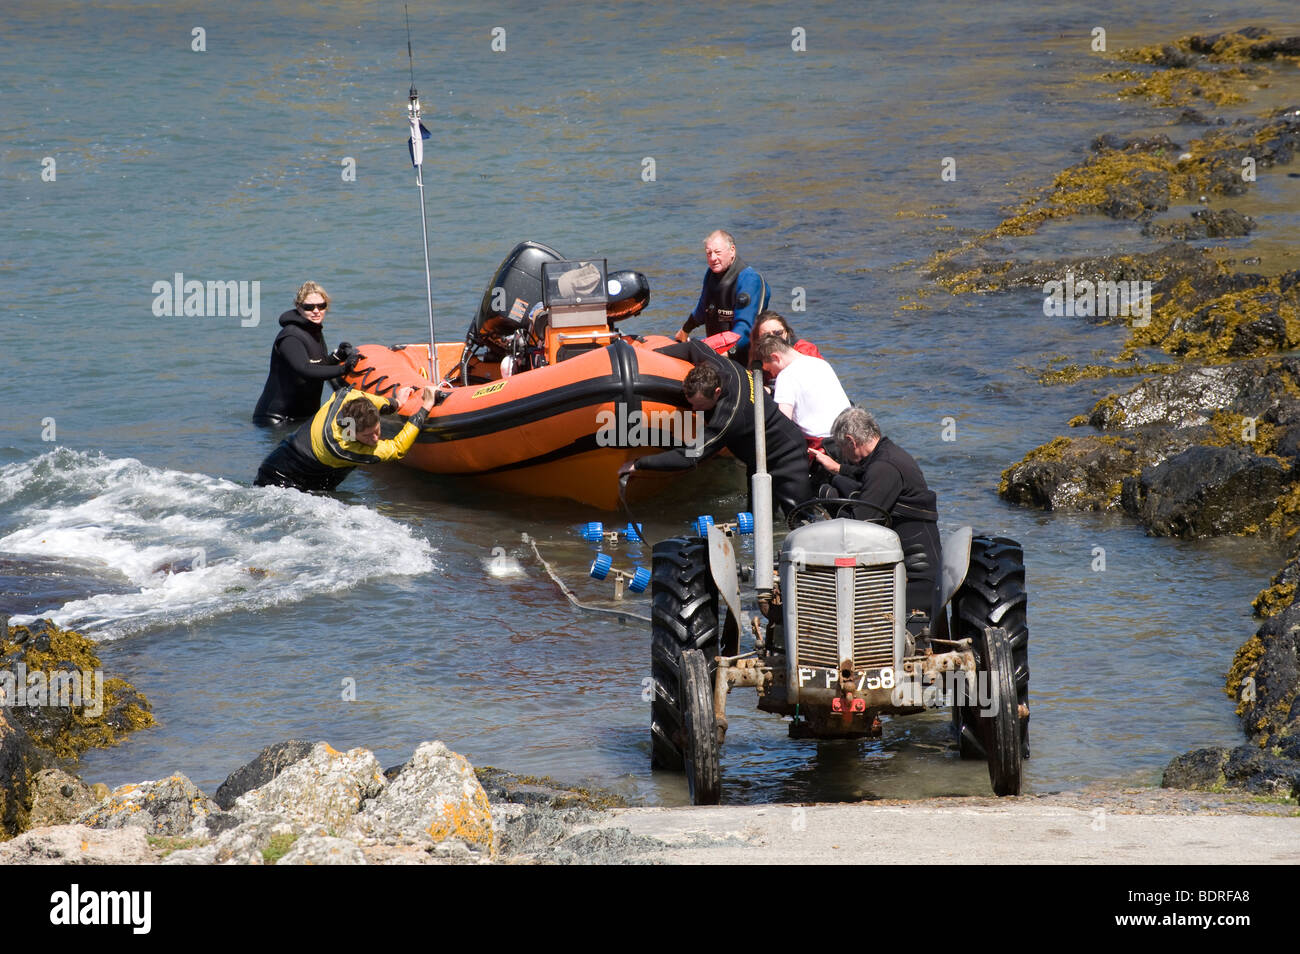 Using a tractor to haul a boat out of the sea on a slipway in Wales - Stock Image